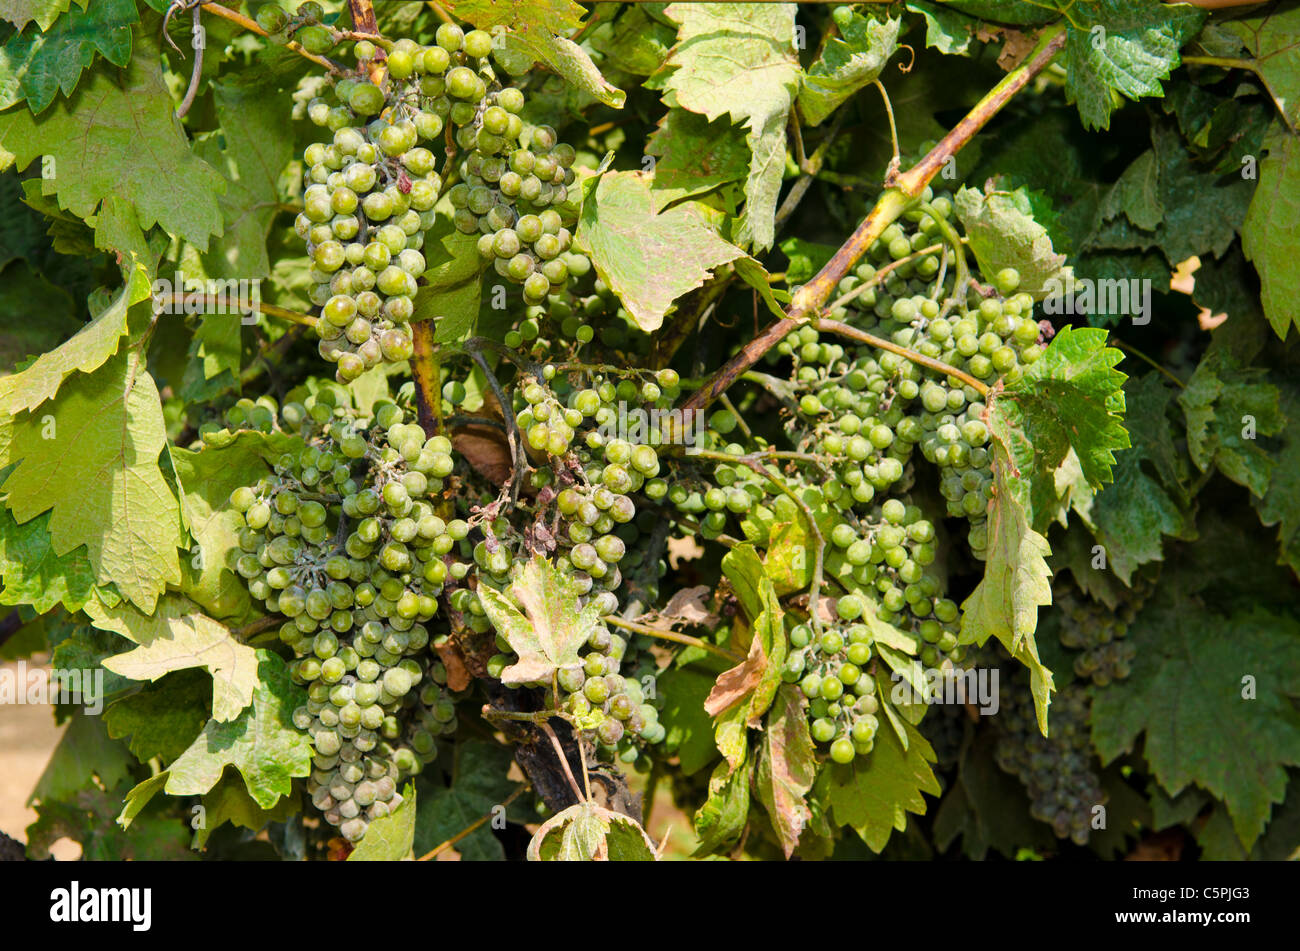 Untreated powdery mildew fungal infestation in grapes Erysiphe necator - Stock Image